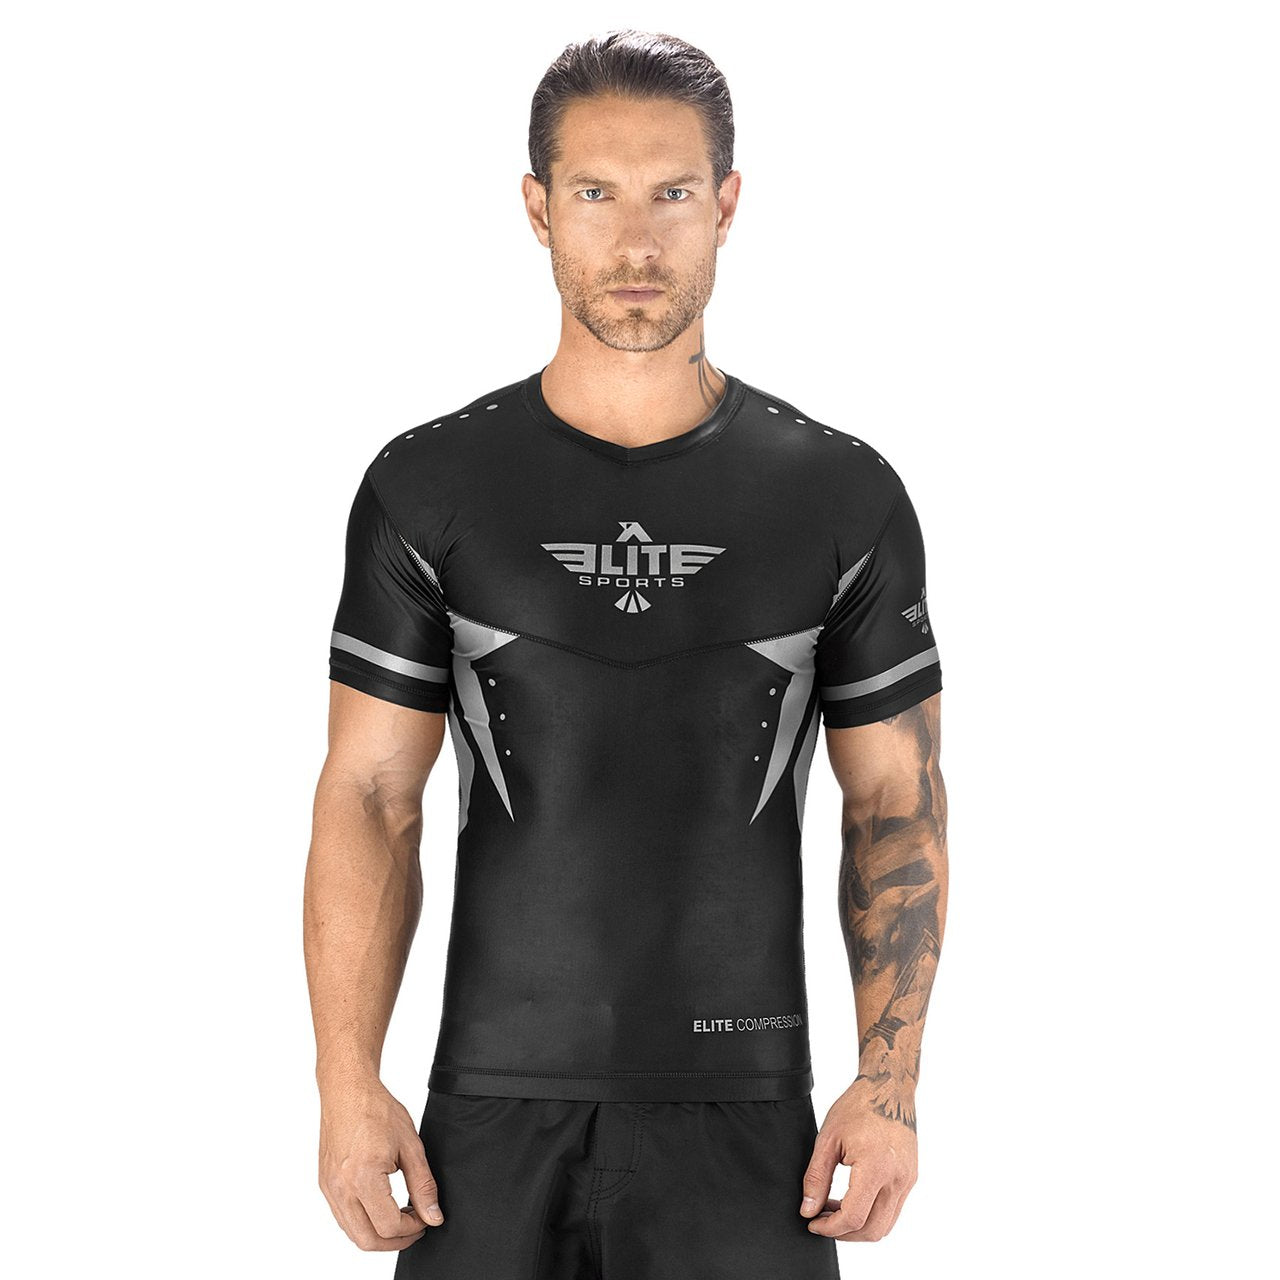 Load image into Gallery viewer, Elite Sports Star Series Sublimation Black/Gray Short Sleeve Rash Guard